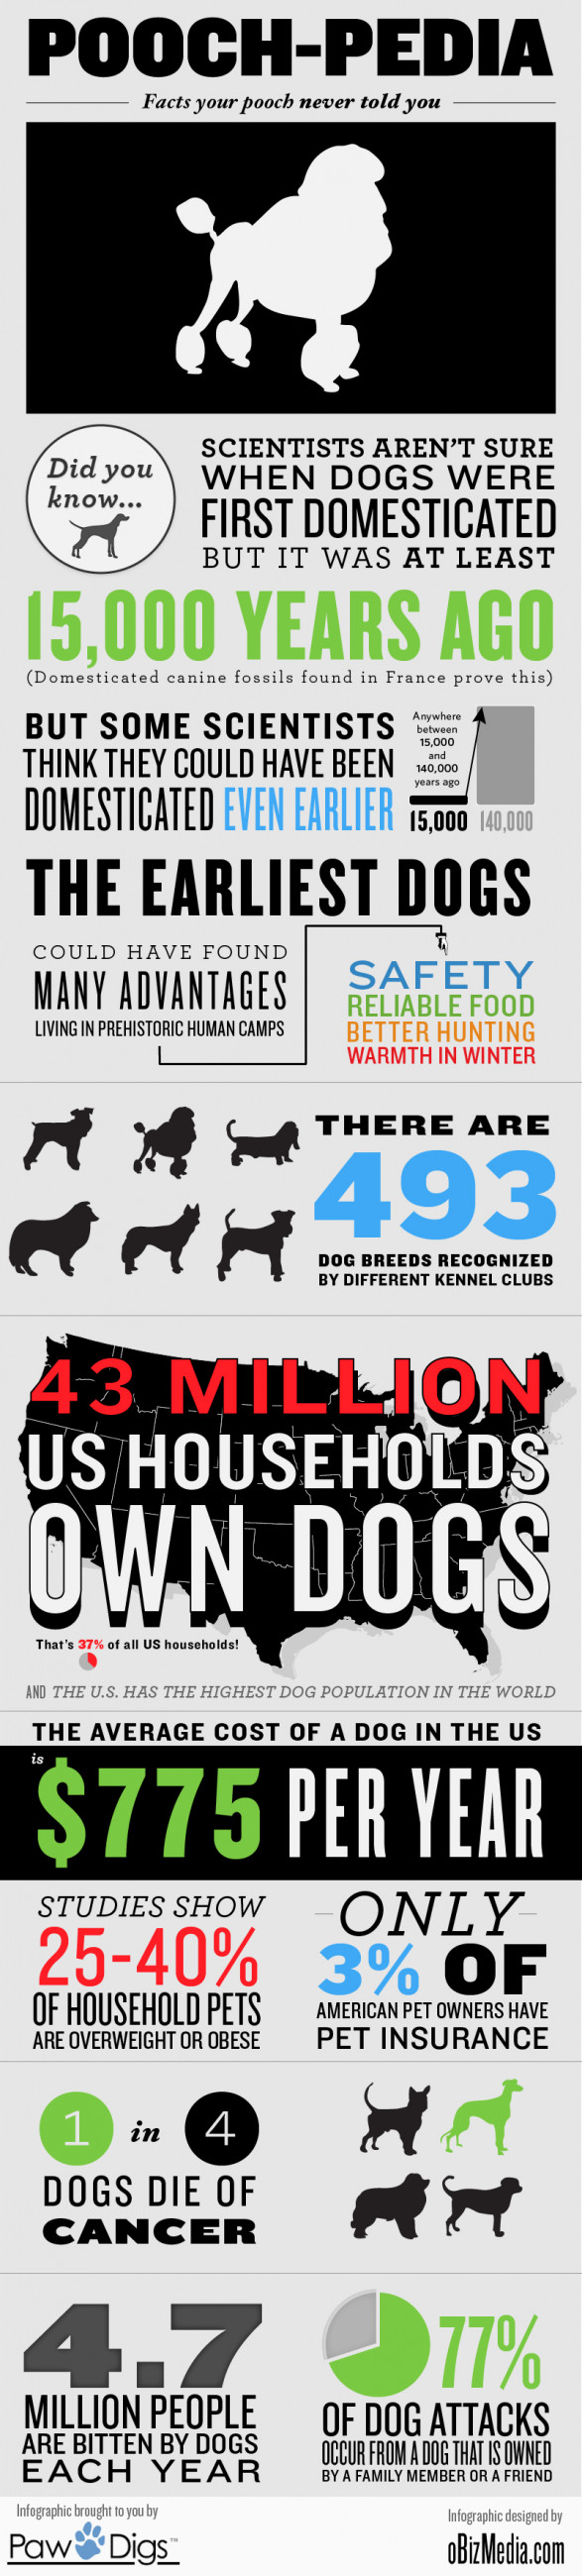 Pooch-pedia: Facts Your Pooch Never Told You